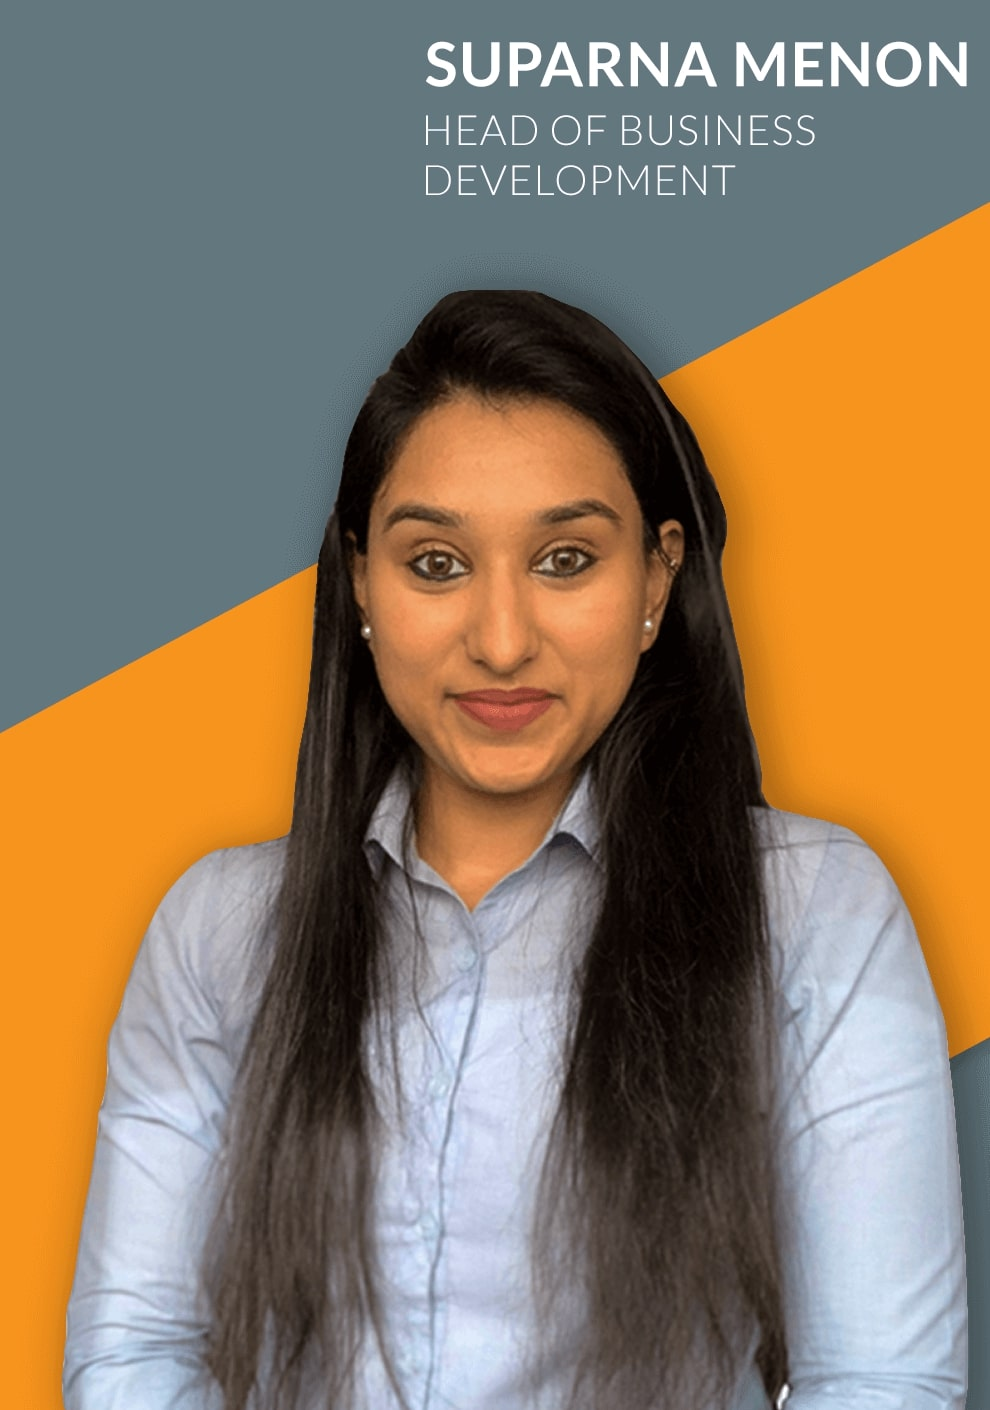 a passionate agency head of business development - suparna representing her team